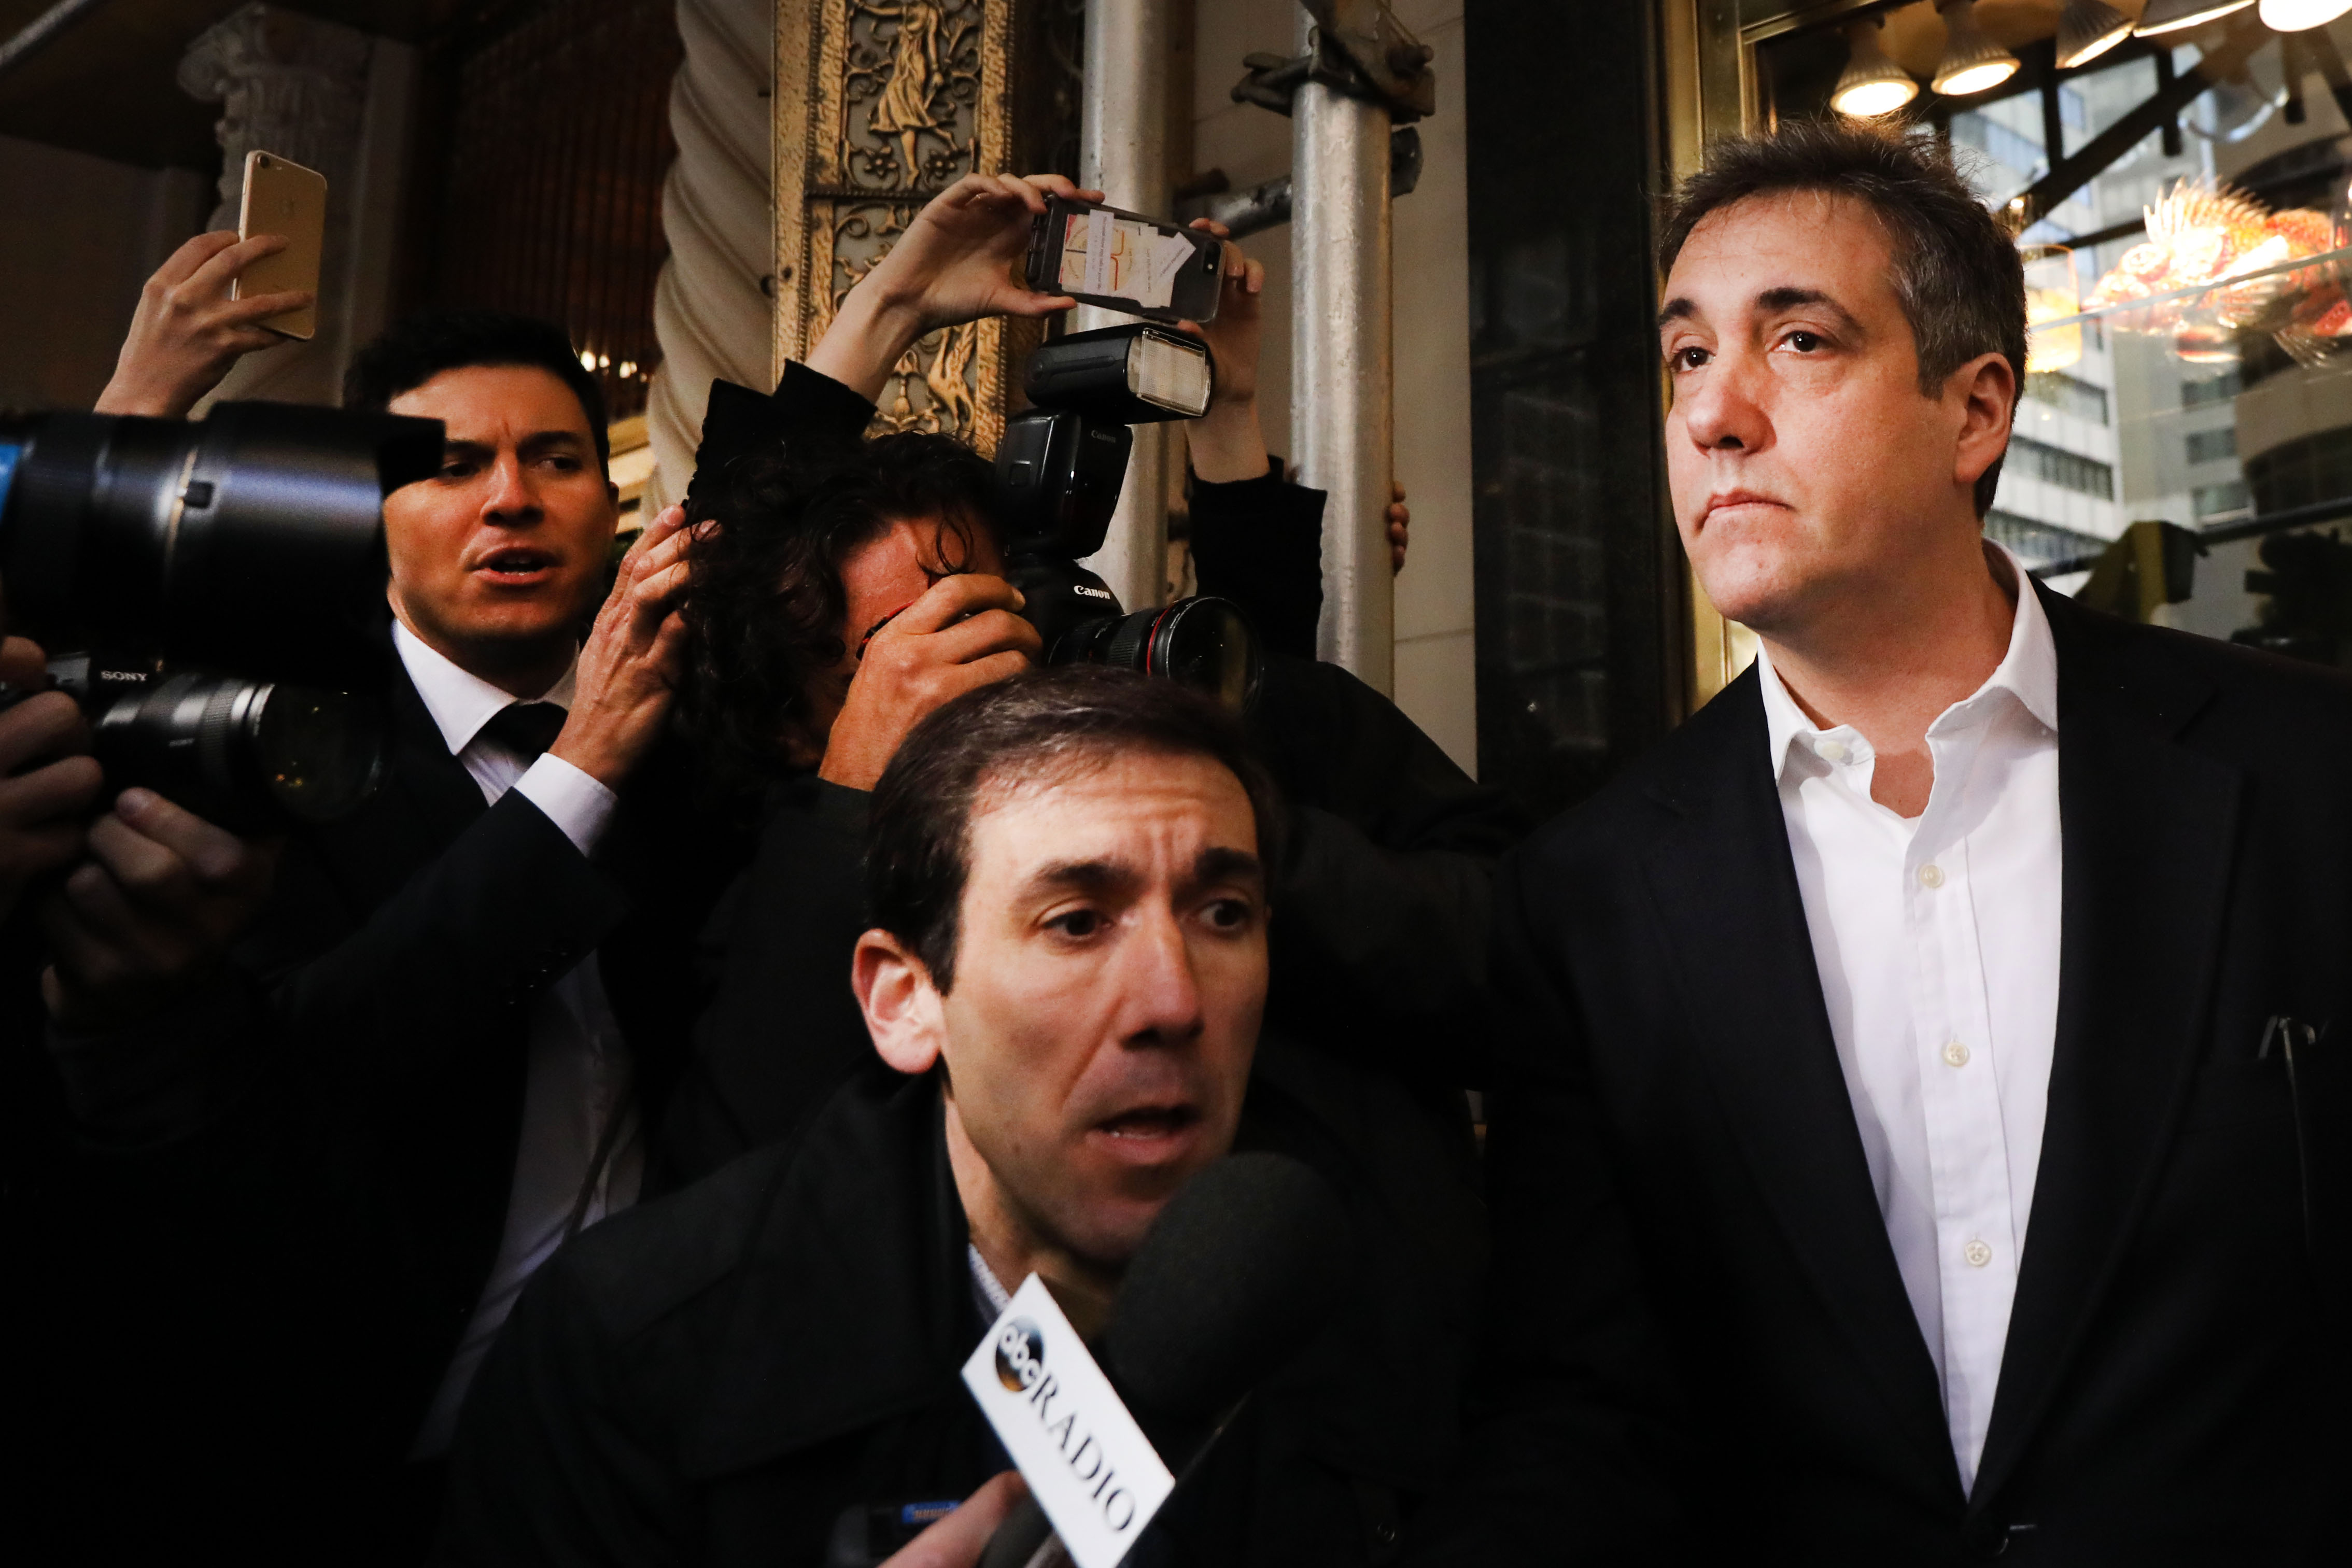 NEW YORK, NEW YORK - MAY 06: Michael Cohen (R), the former personal attorney to President Donald Trump, departs his Manhattan apartment for prison on May 06, 2019 in New York City. Cohen is due to report to a federal prison in Otisville, New York, where he will begin serving a three-year sentence for campaign finance violations, tax evasion and other crimes. (Photo by Spencer Platt/Getty Images)